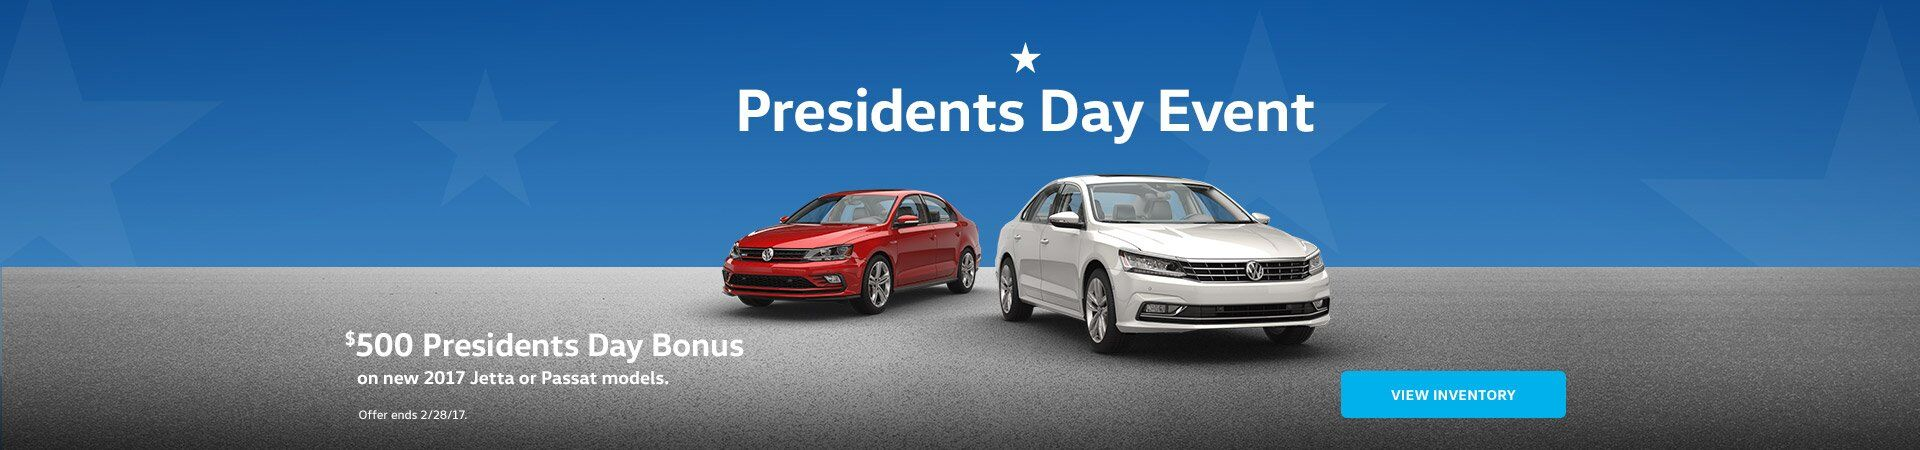 Presidents Day Car Incentives Autos Post